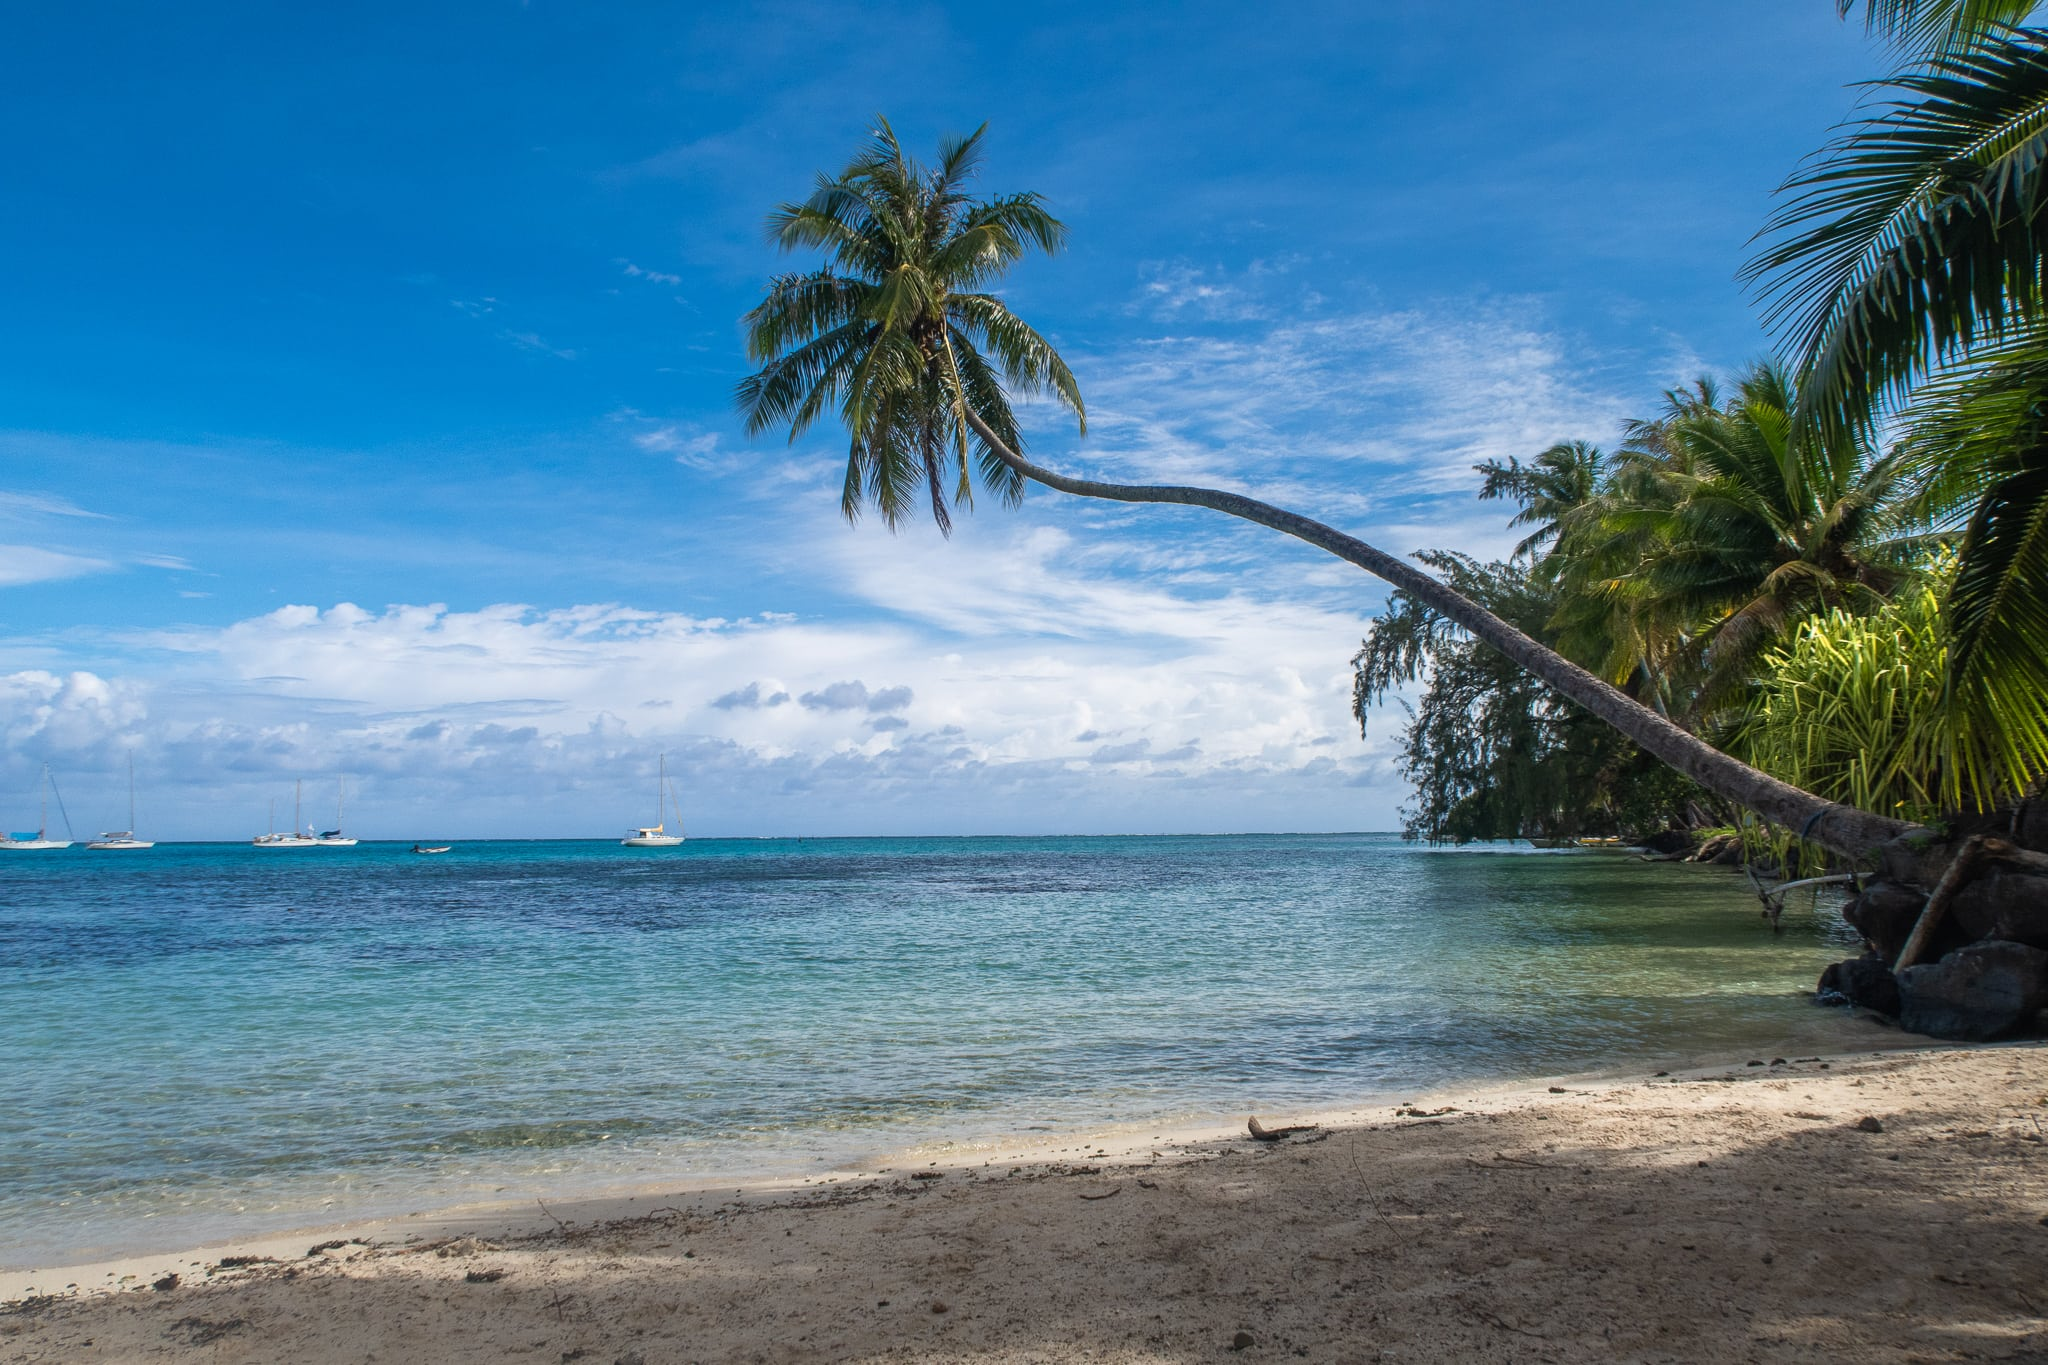 A Palm Tree Extending Out Over The Beach In Moorea.